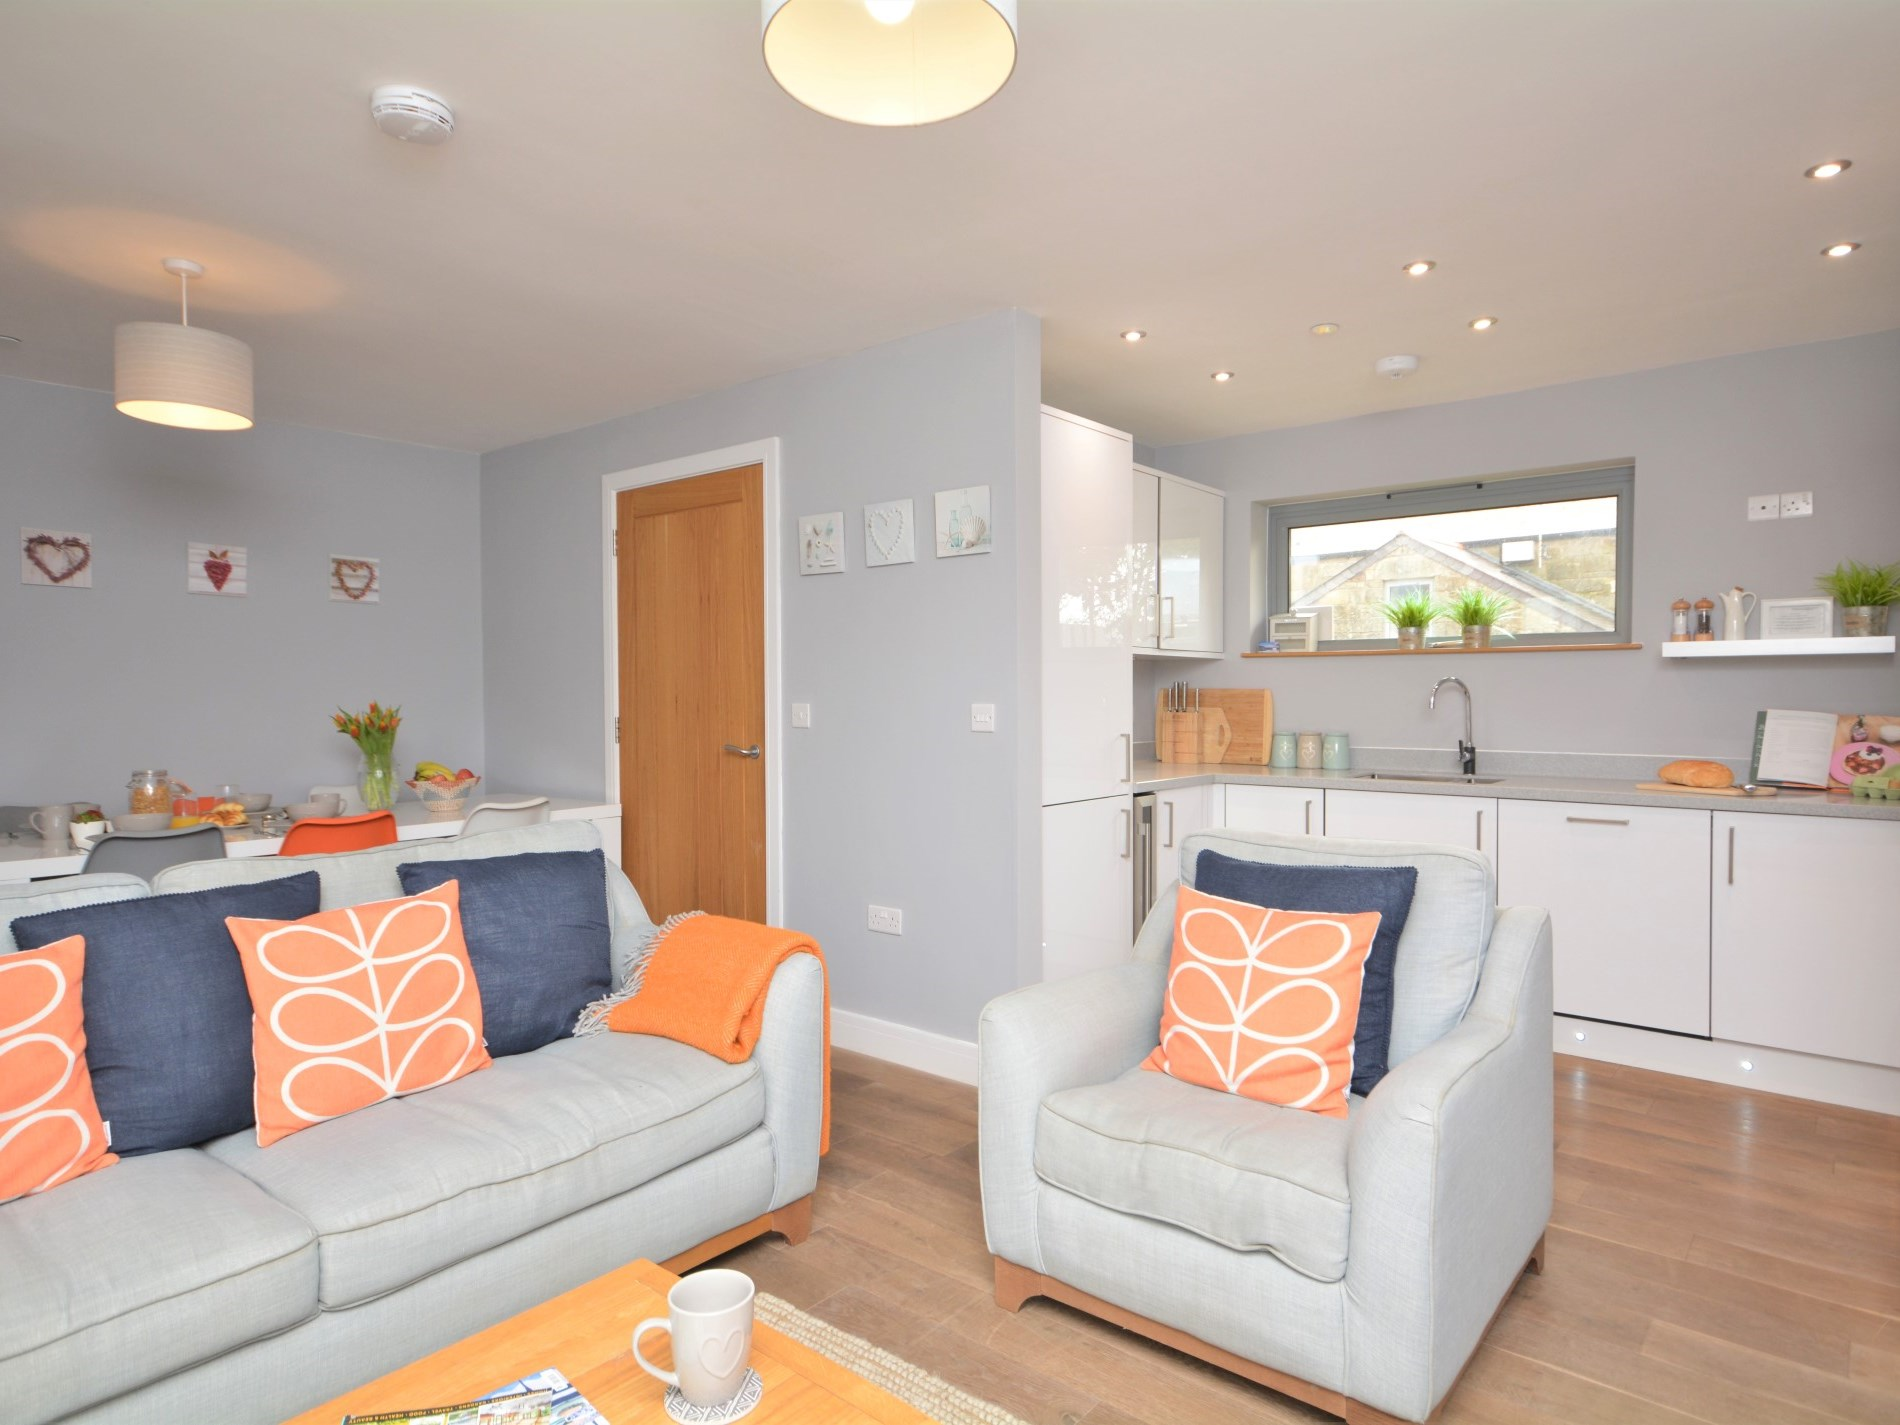 2 Bedroom Cottage in St. Austell, Cornwall